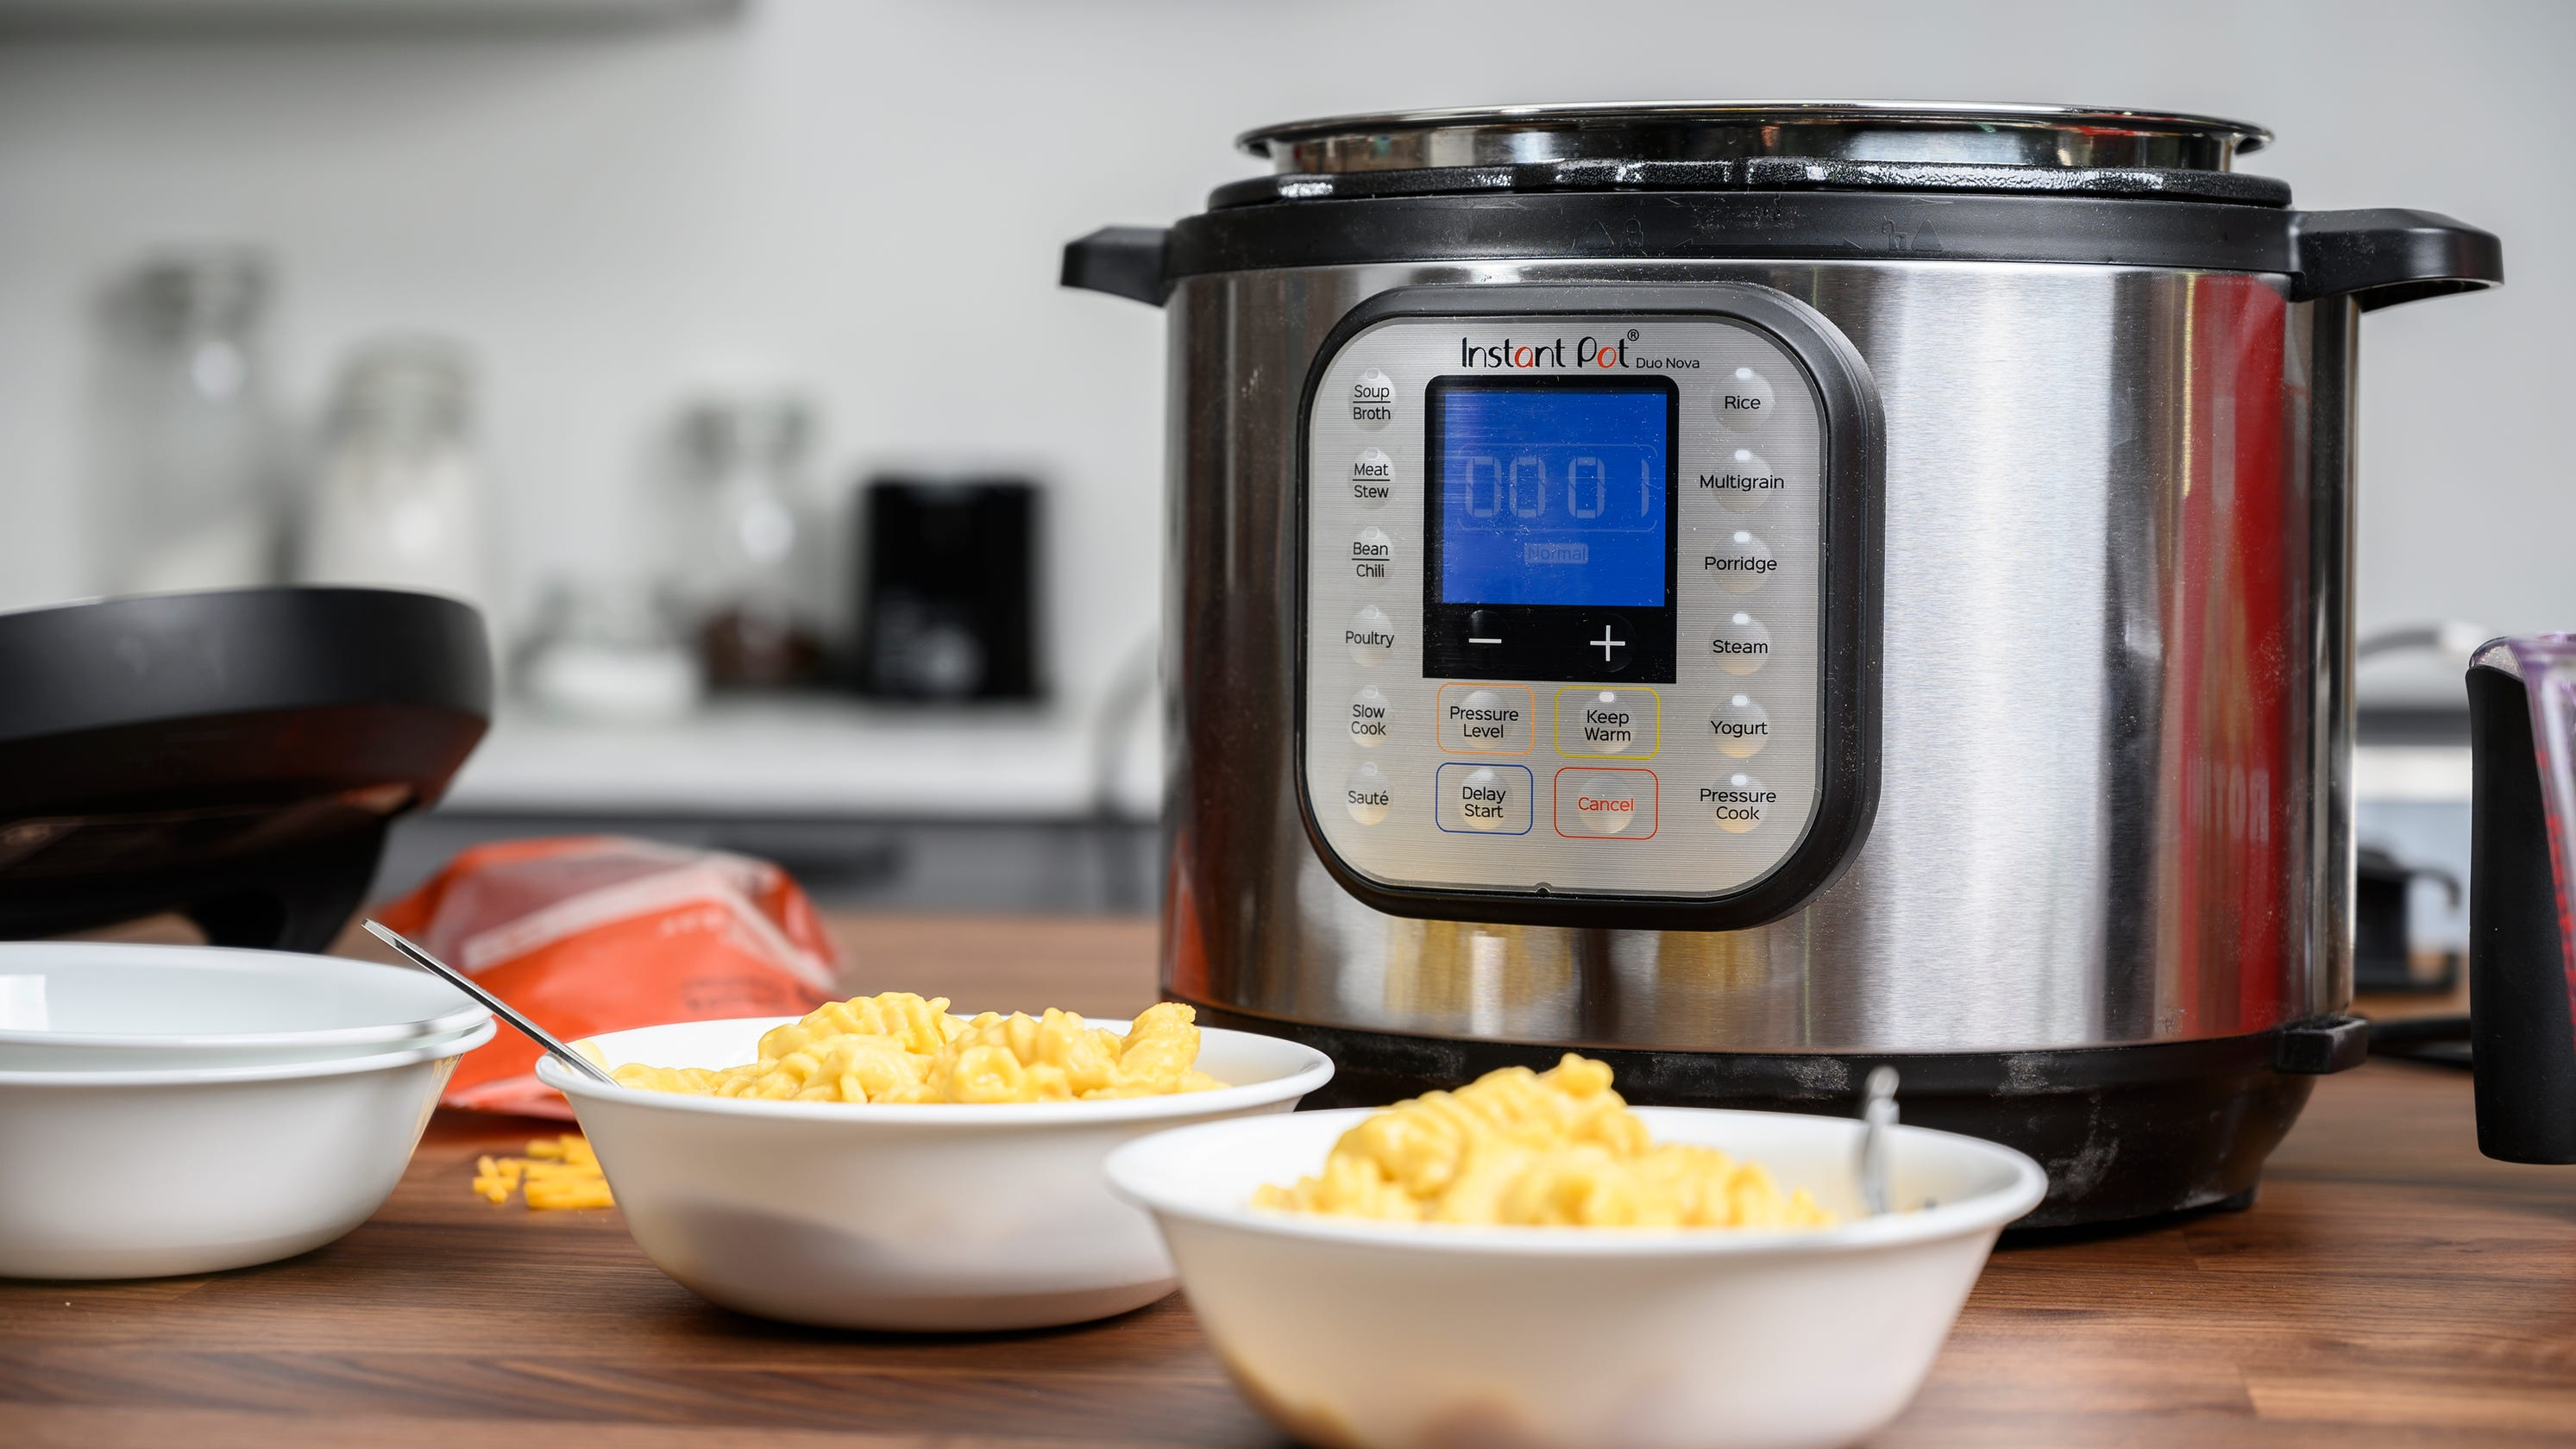 This best-selling Instant Pot is on sale at Kohl's for an impressively low price